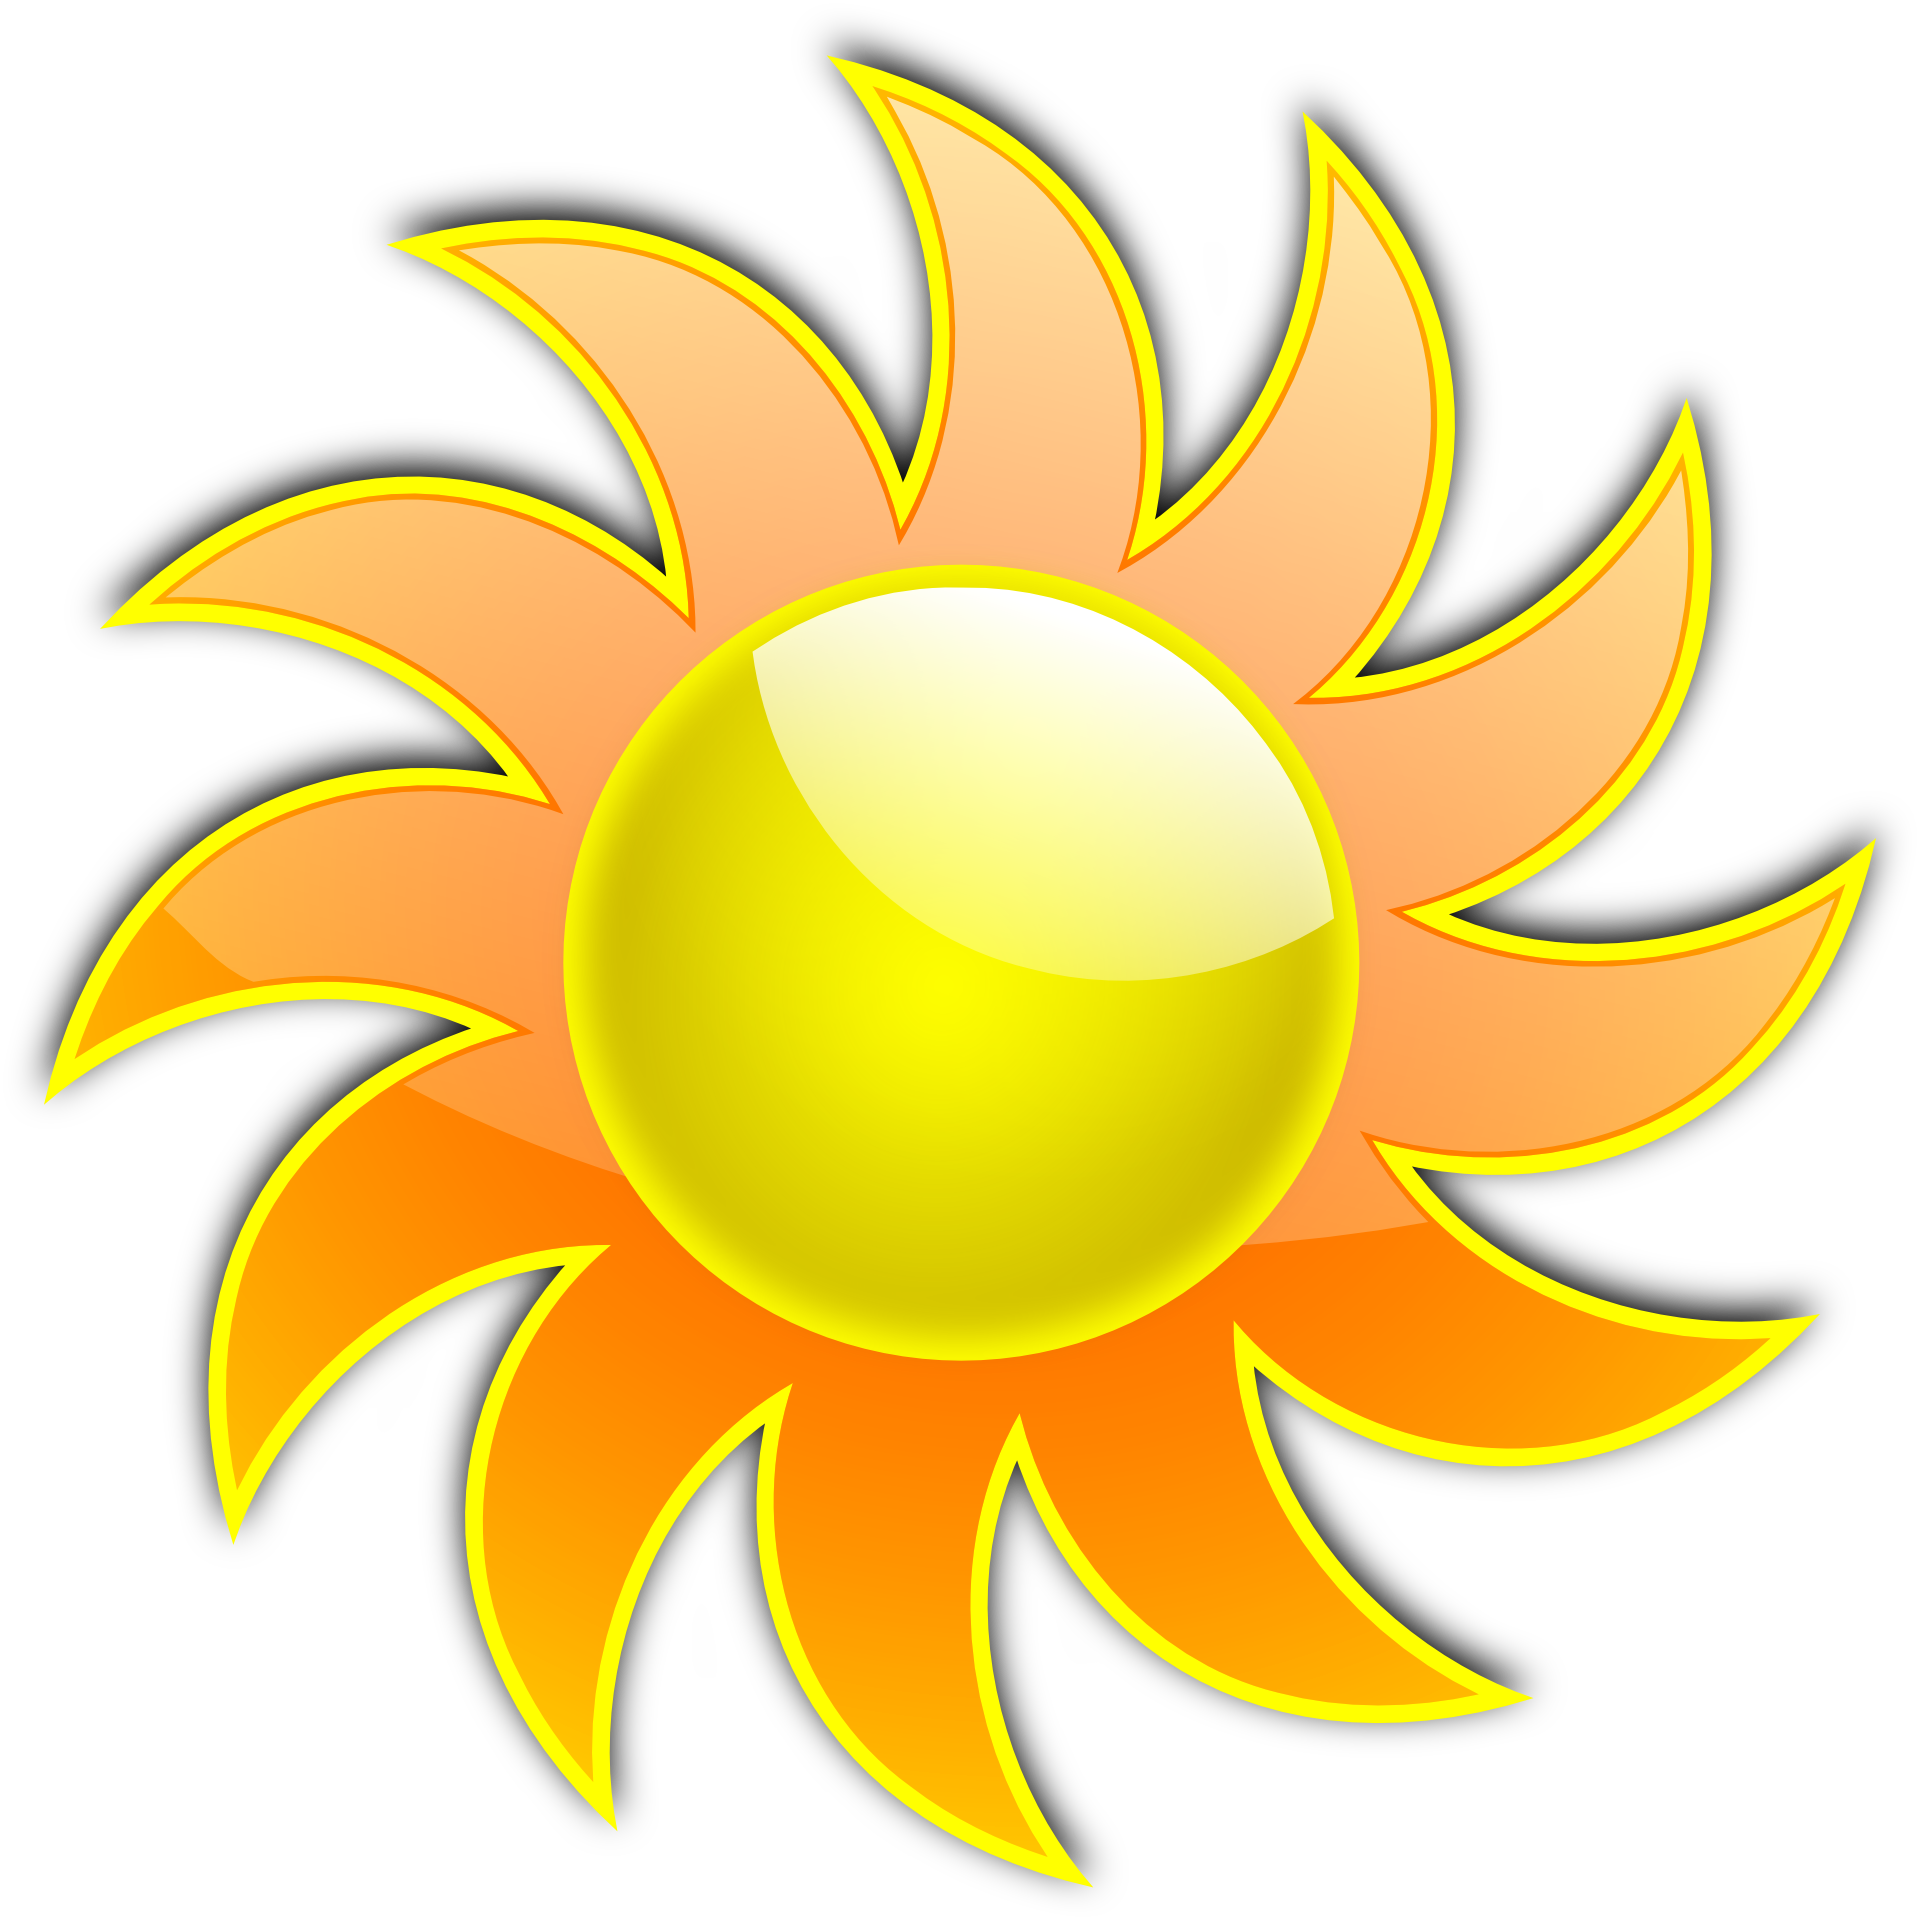 Hot clipart mild weather. Drawing of yellow sun